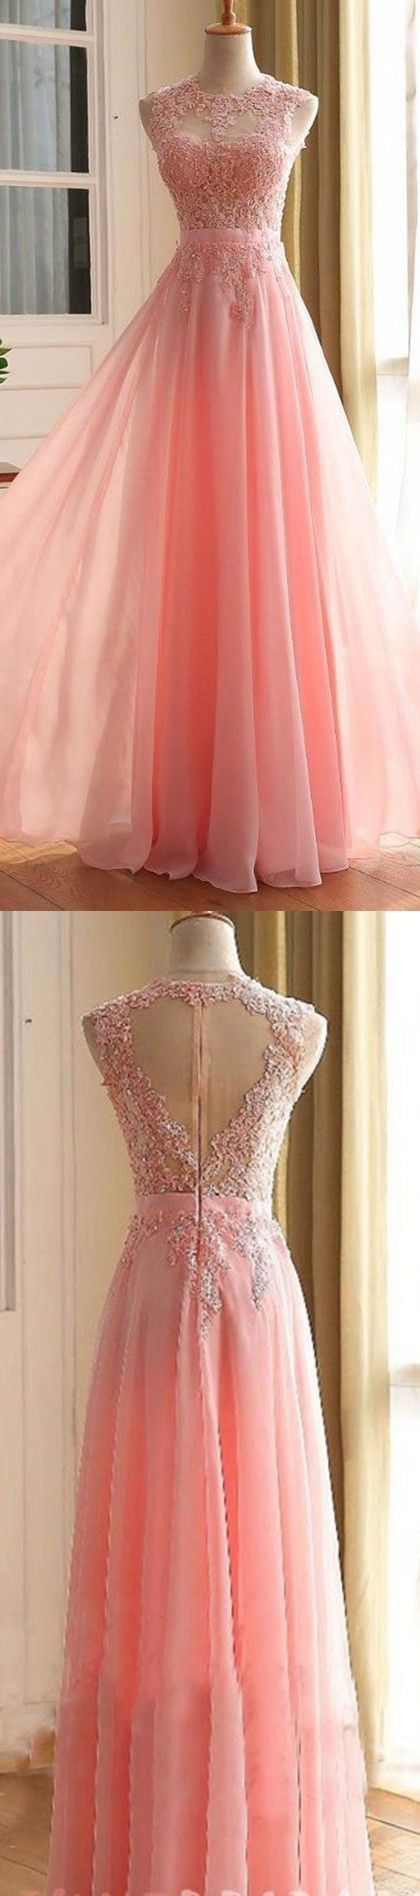 best prom ideas images on pinterest